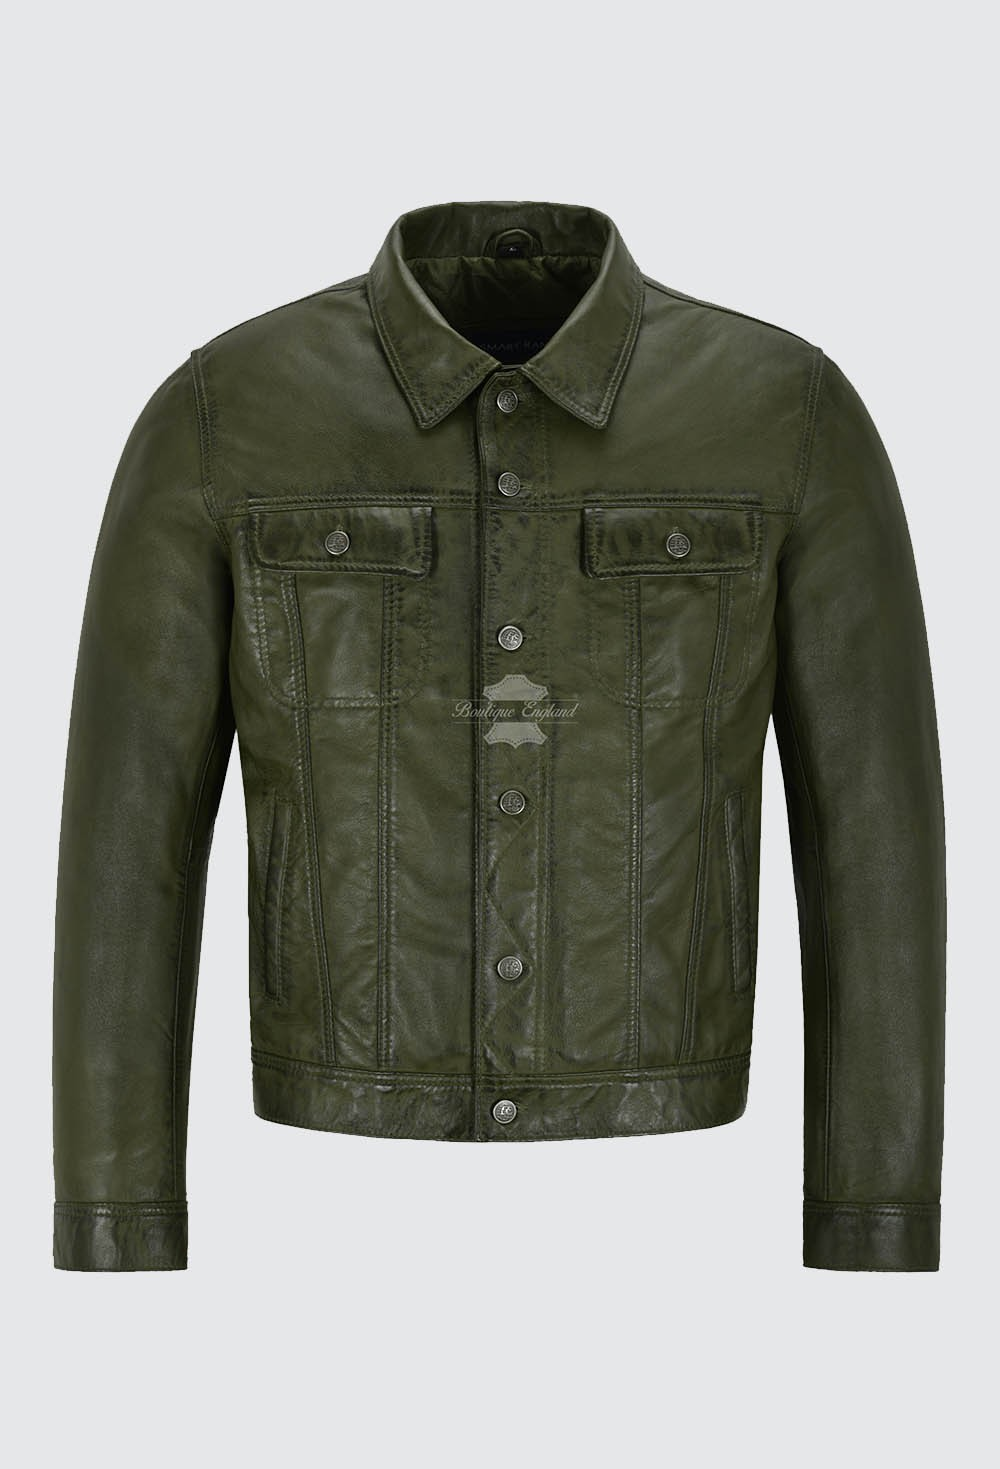 Men's Trucker Leather Jacket Olive Napa Classic Western Fashion Biker Style 1280